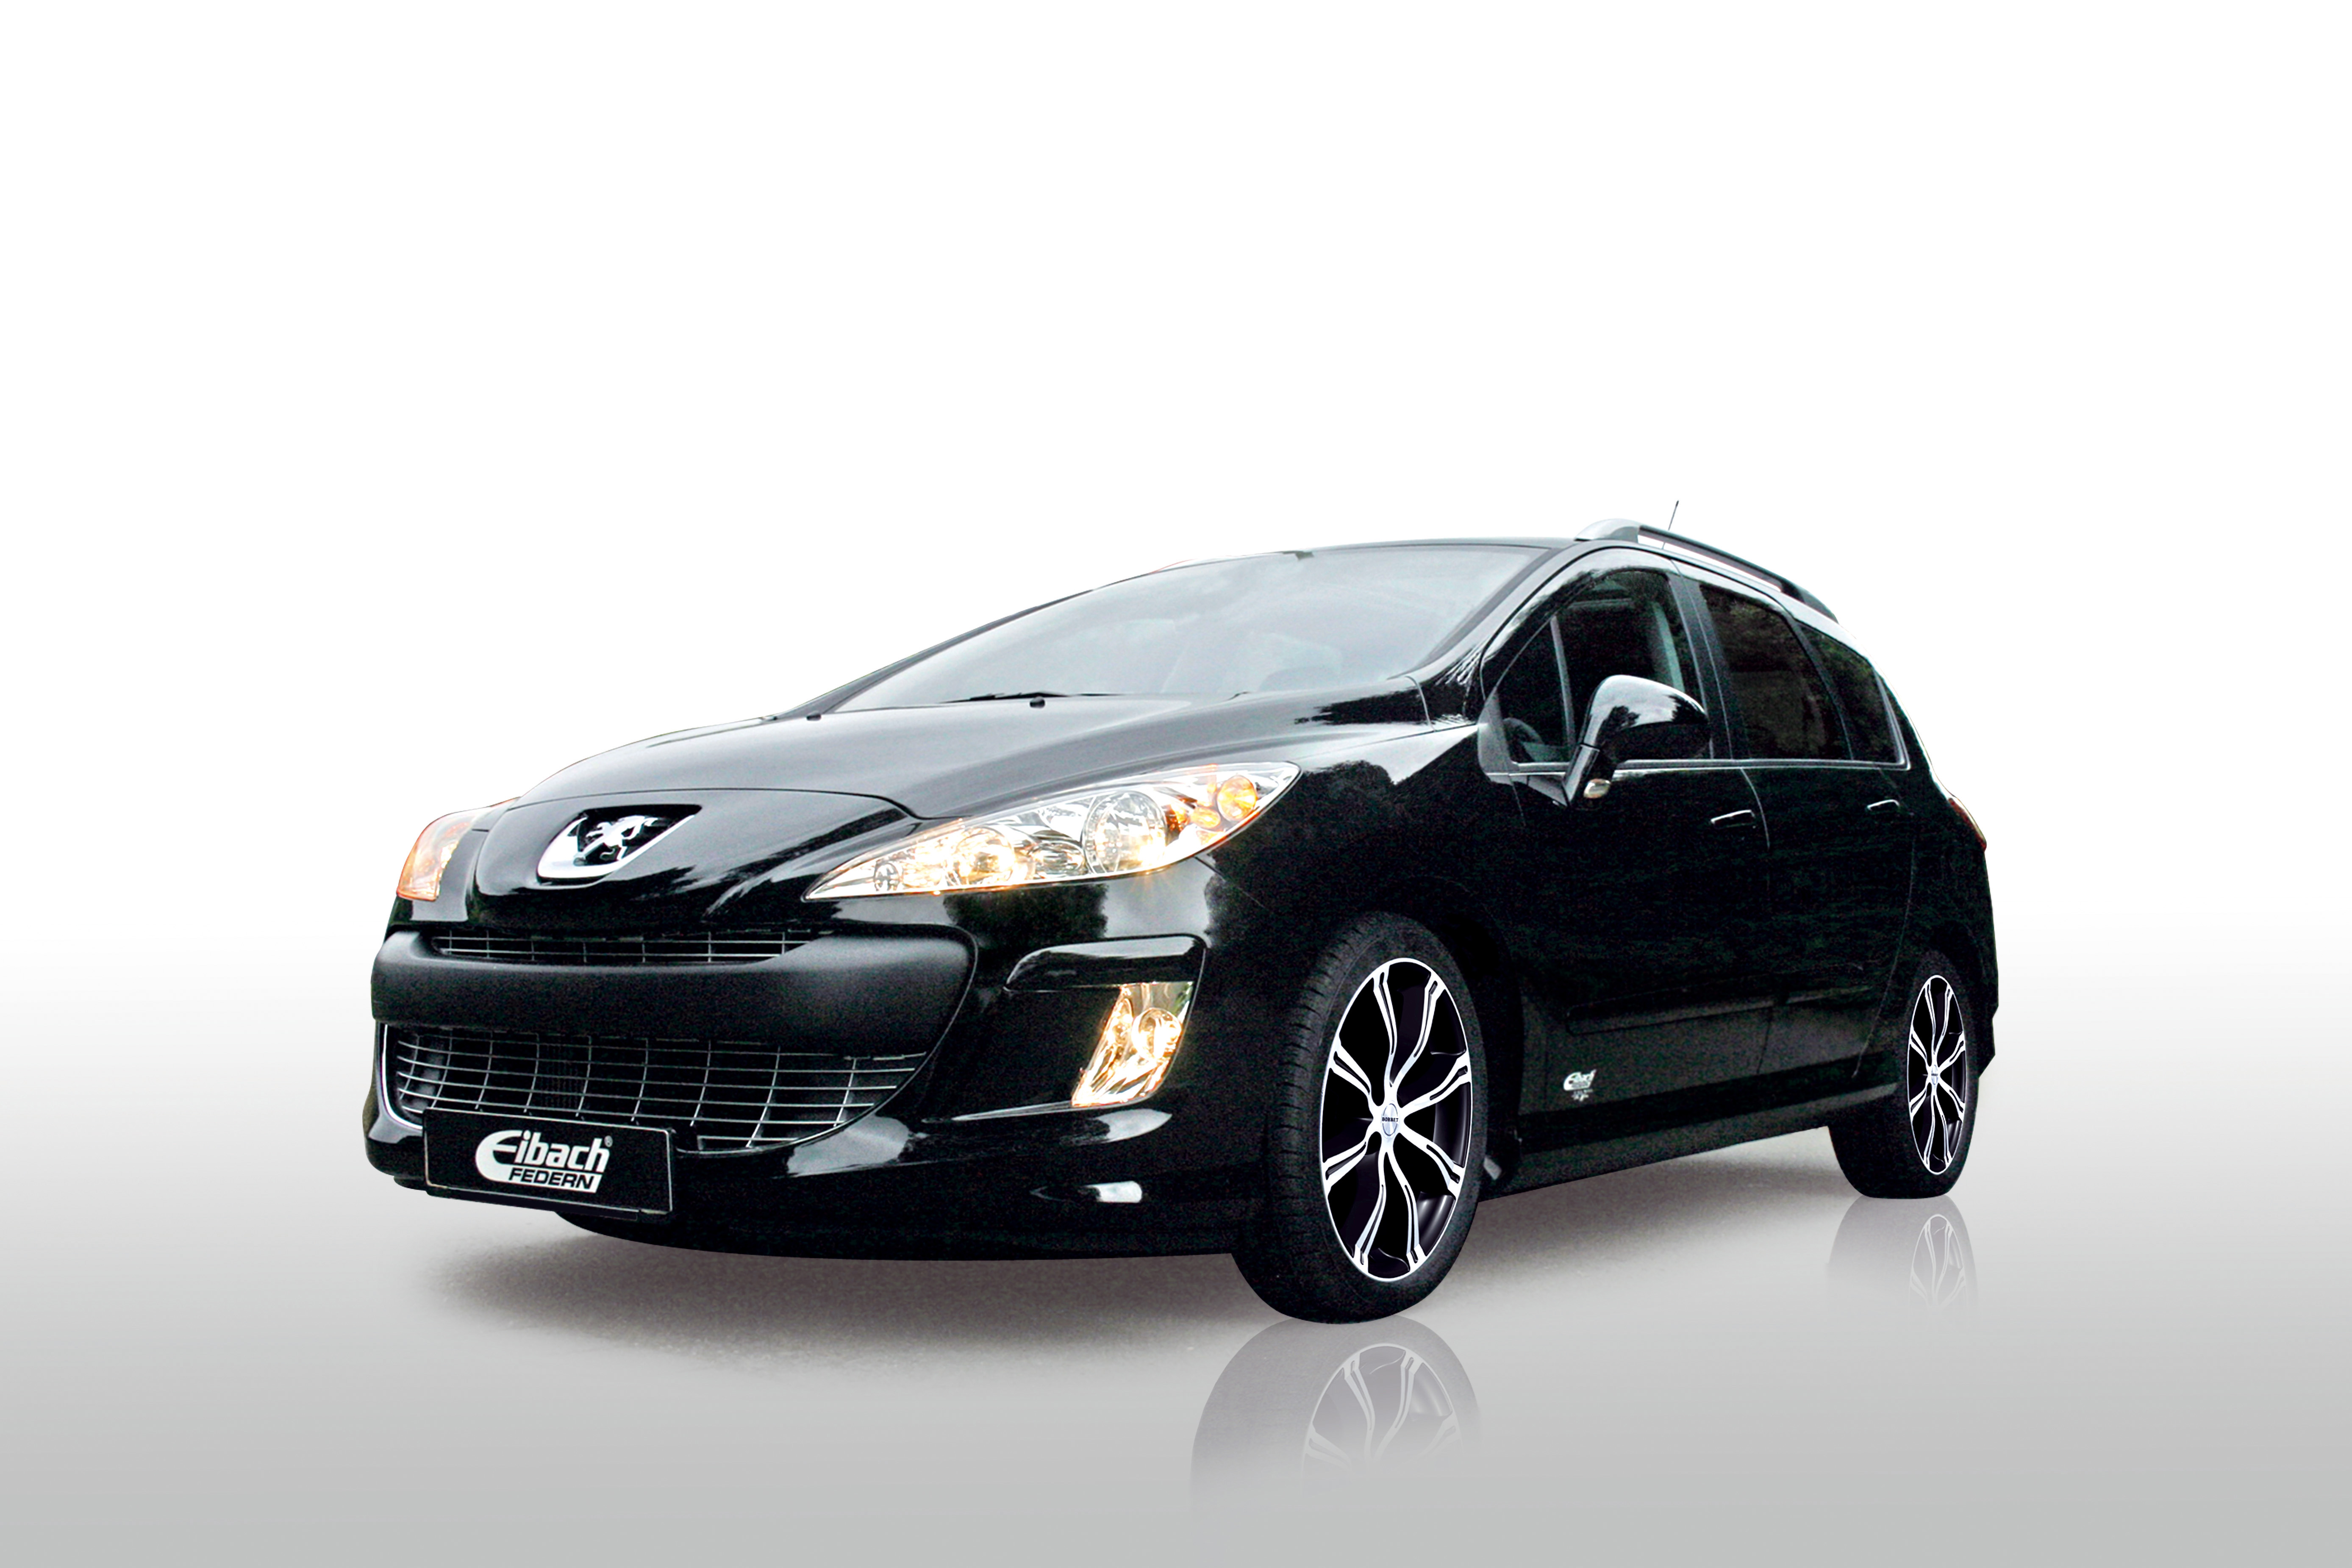 peugeot 308 sw by eibach news gallery top speed. Black Bedroom Furniture Sets. Home Design Ideas